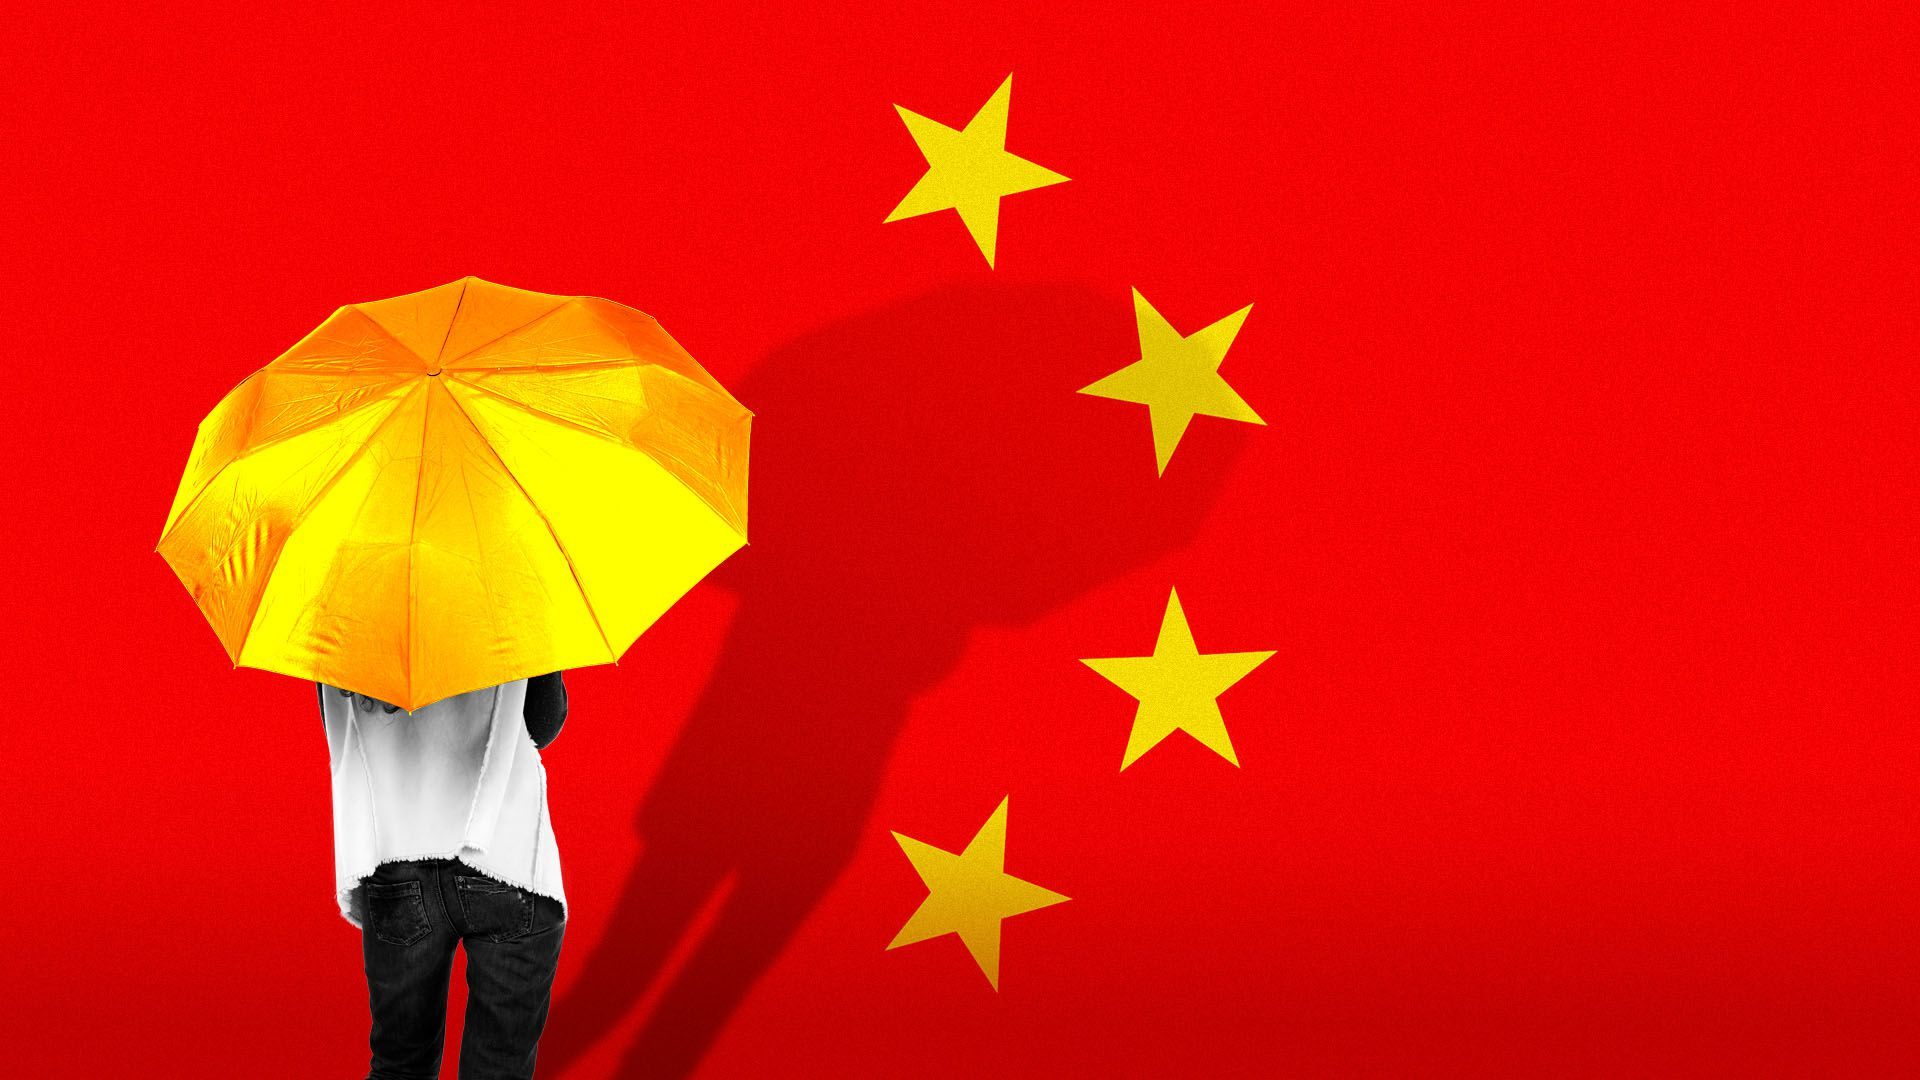 Illustration of the Chinese flag with a Hong Kong umbrella movement protestor standing over the biggest star